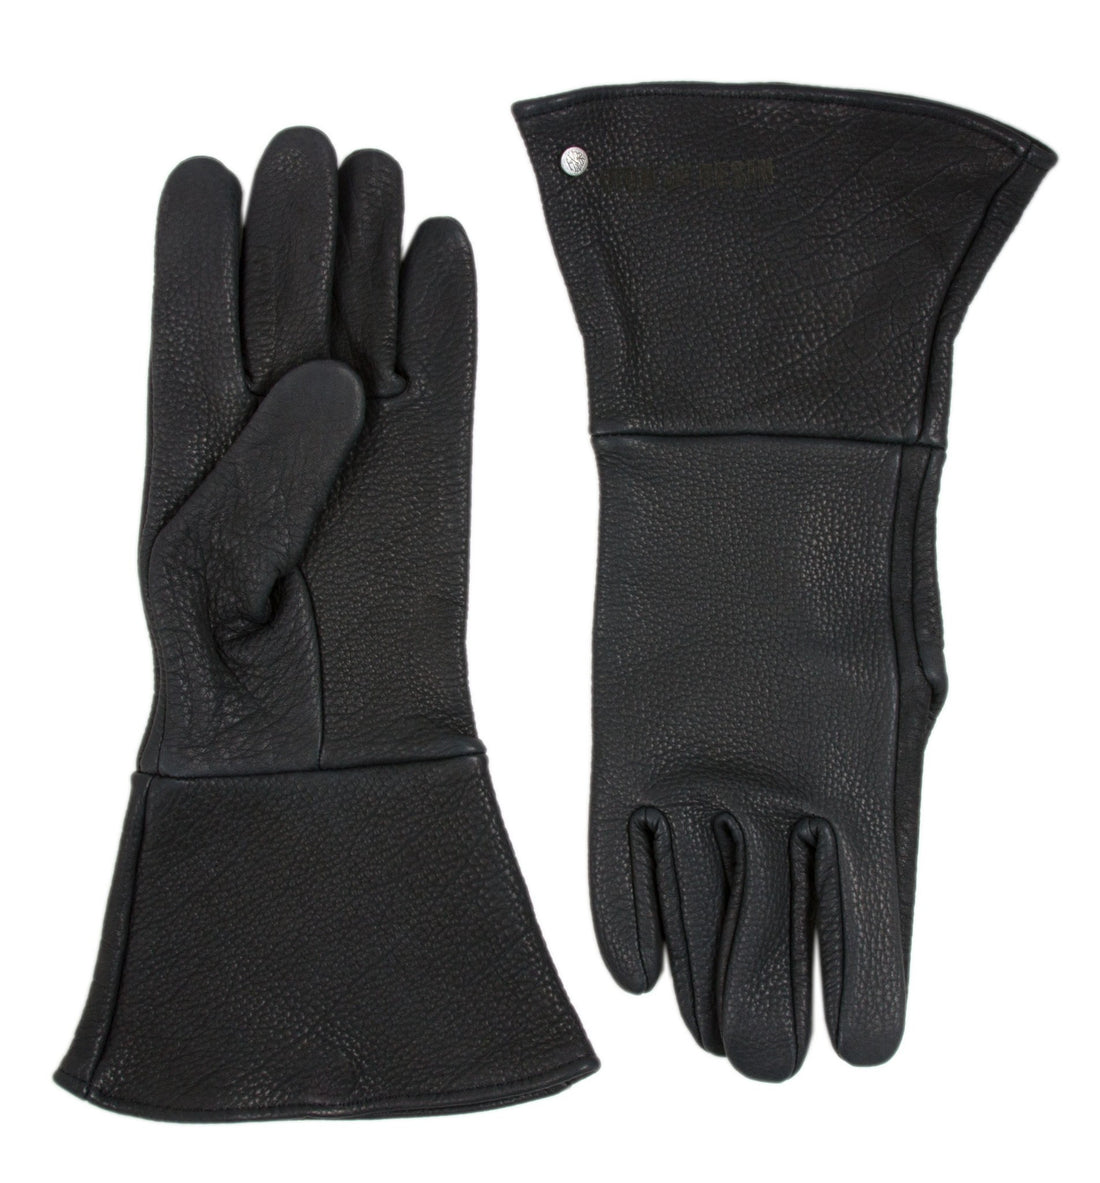 BUFFALO GAUNTLET RIDER GLOVE - Moto: Gloves - Iron and Resin